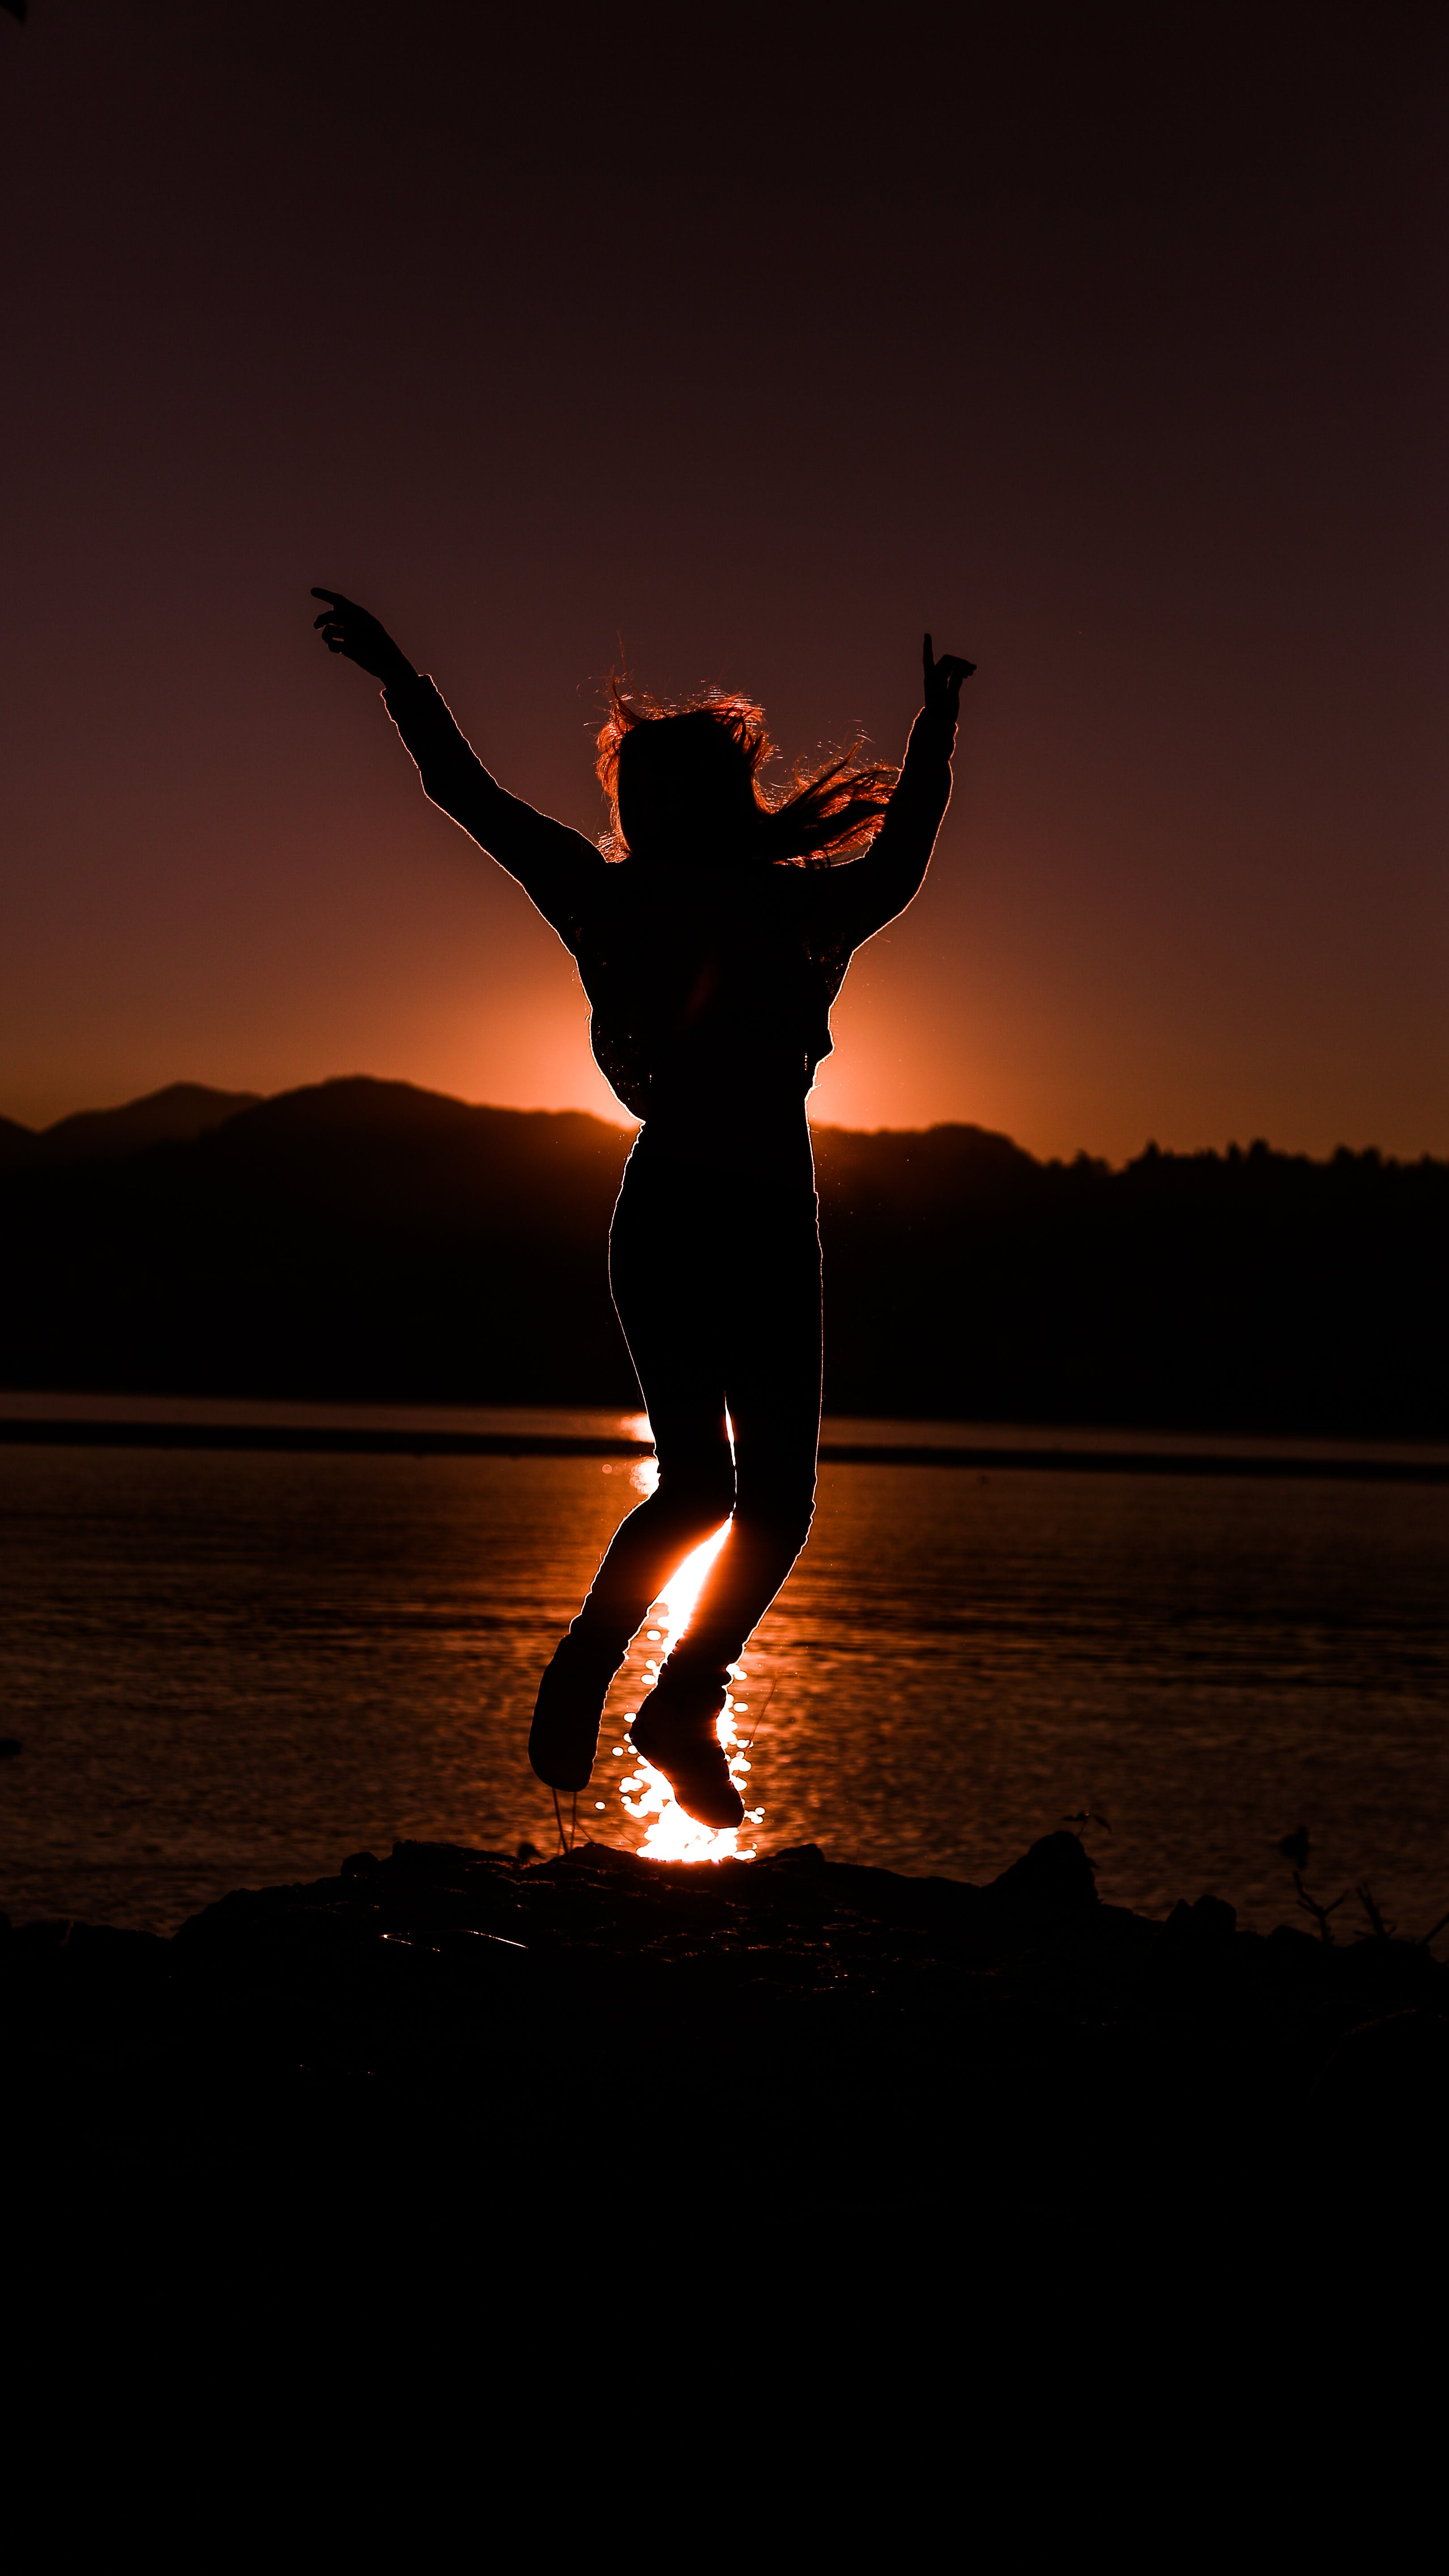 Silhouette of Person Jumping Near Body of Water